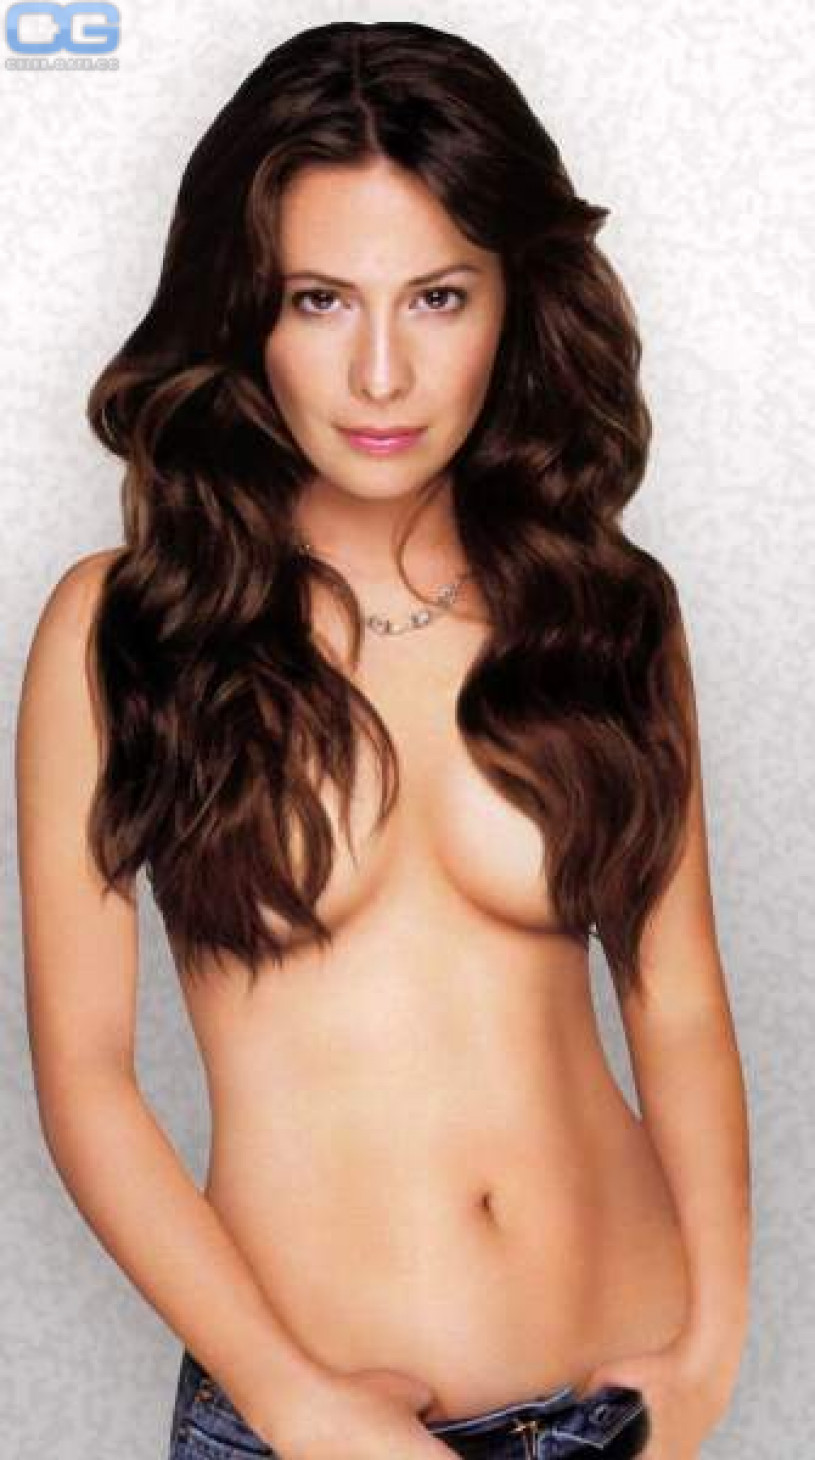 Nude photos of holly marie combs